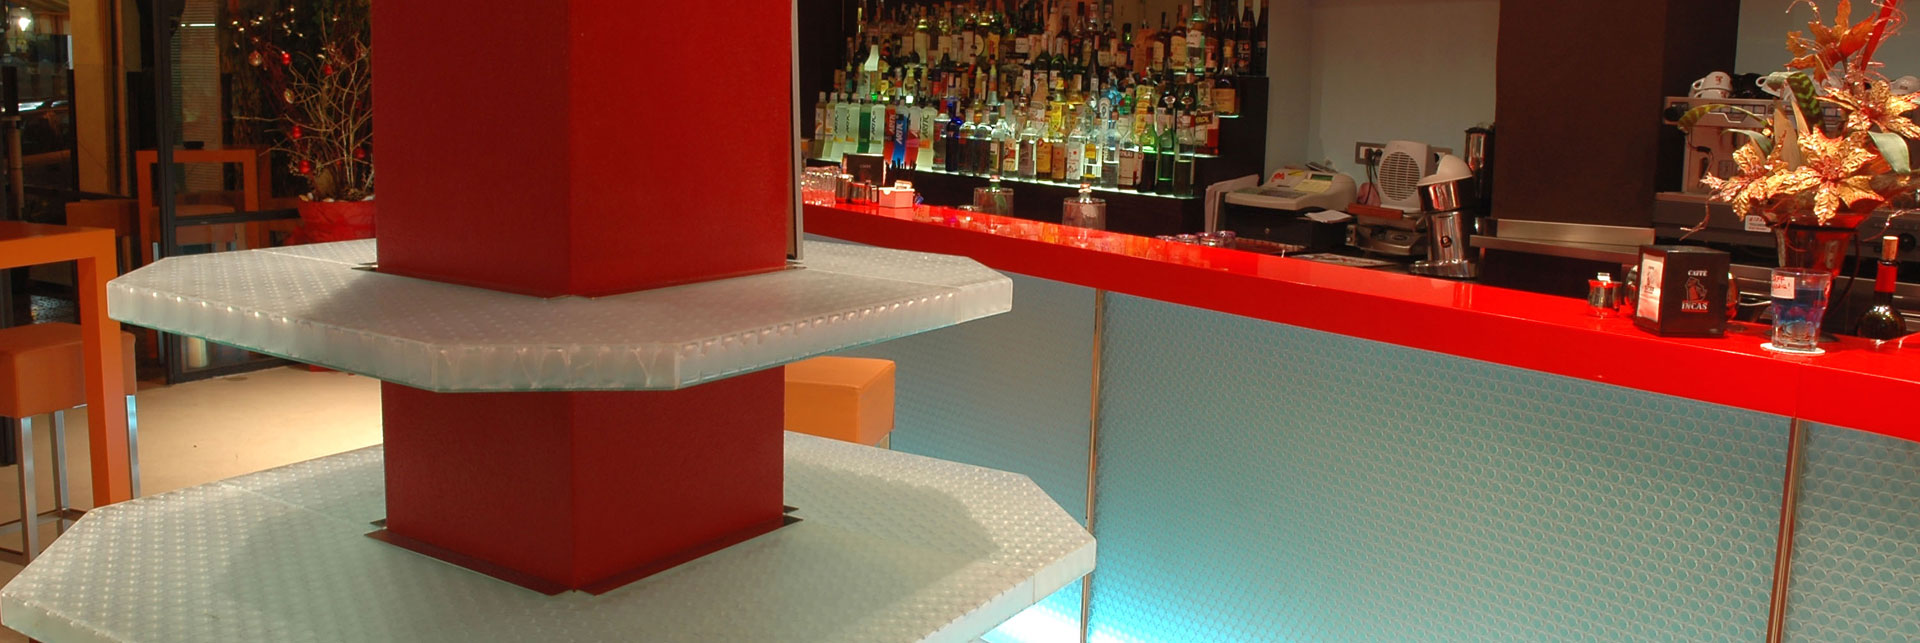 Pazza Idea Bar